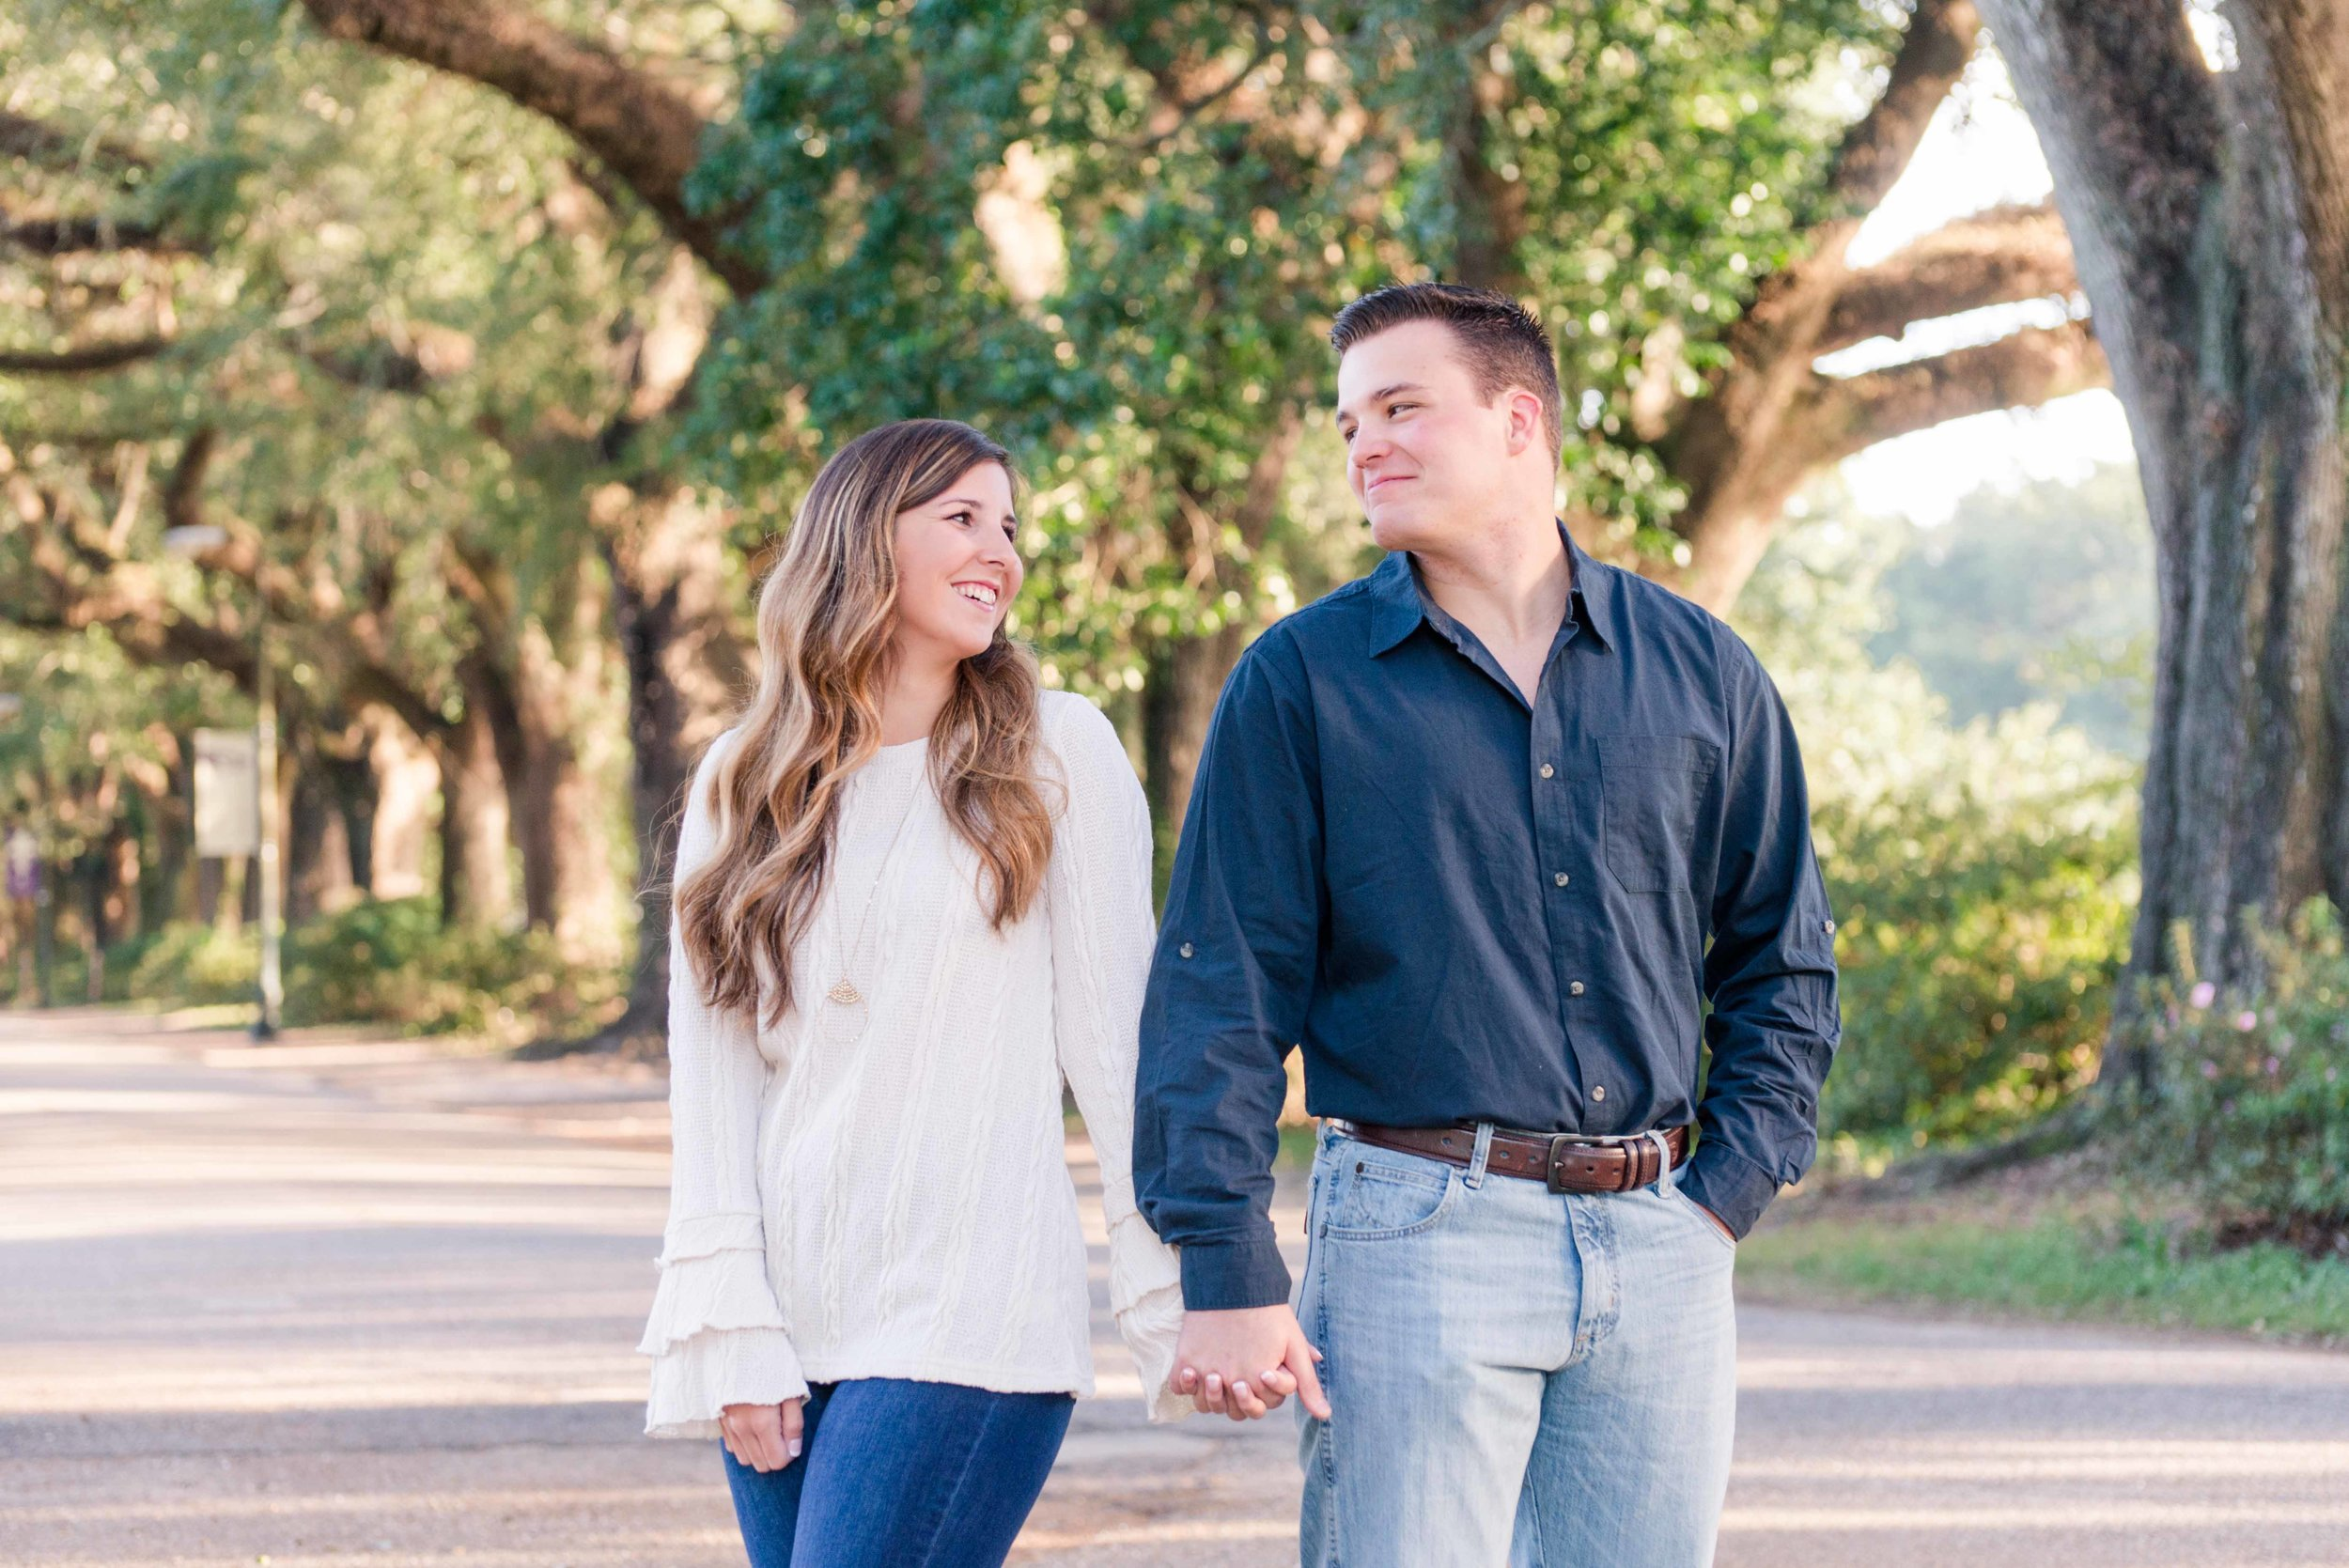 Avenue of Oaks Engagement Session Mobile Alabama Shelby and Bryan